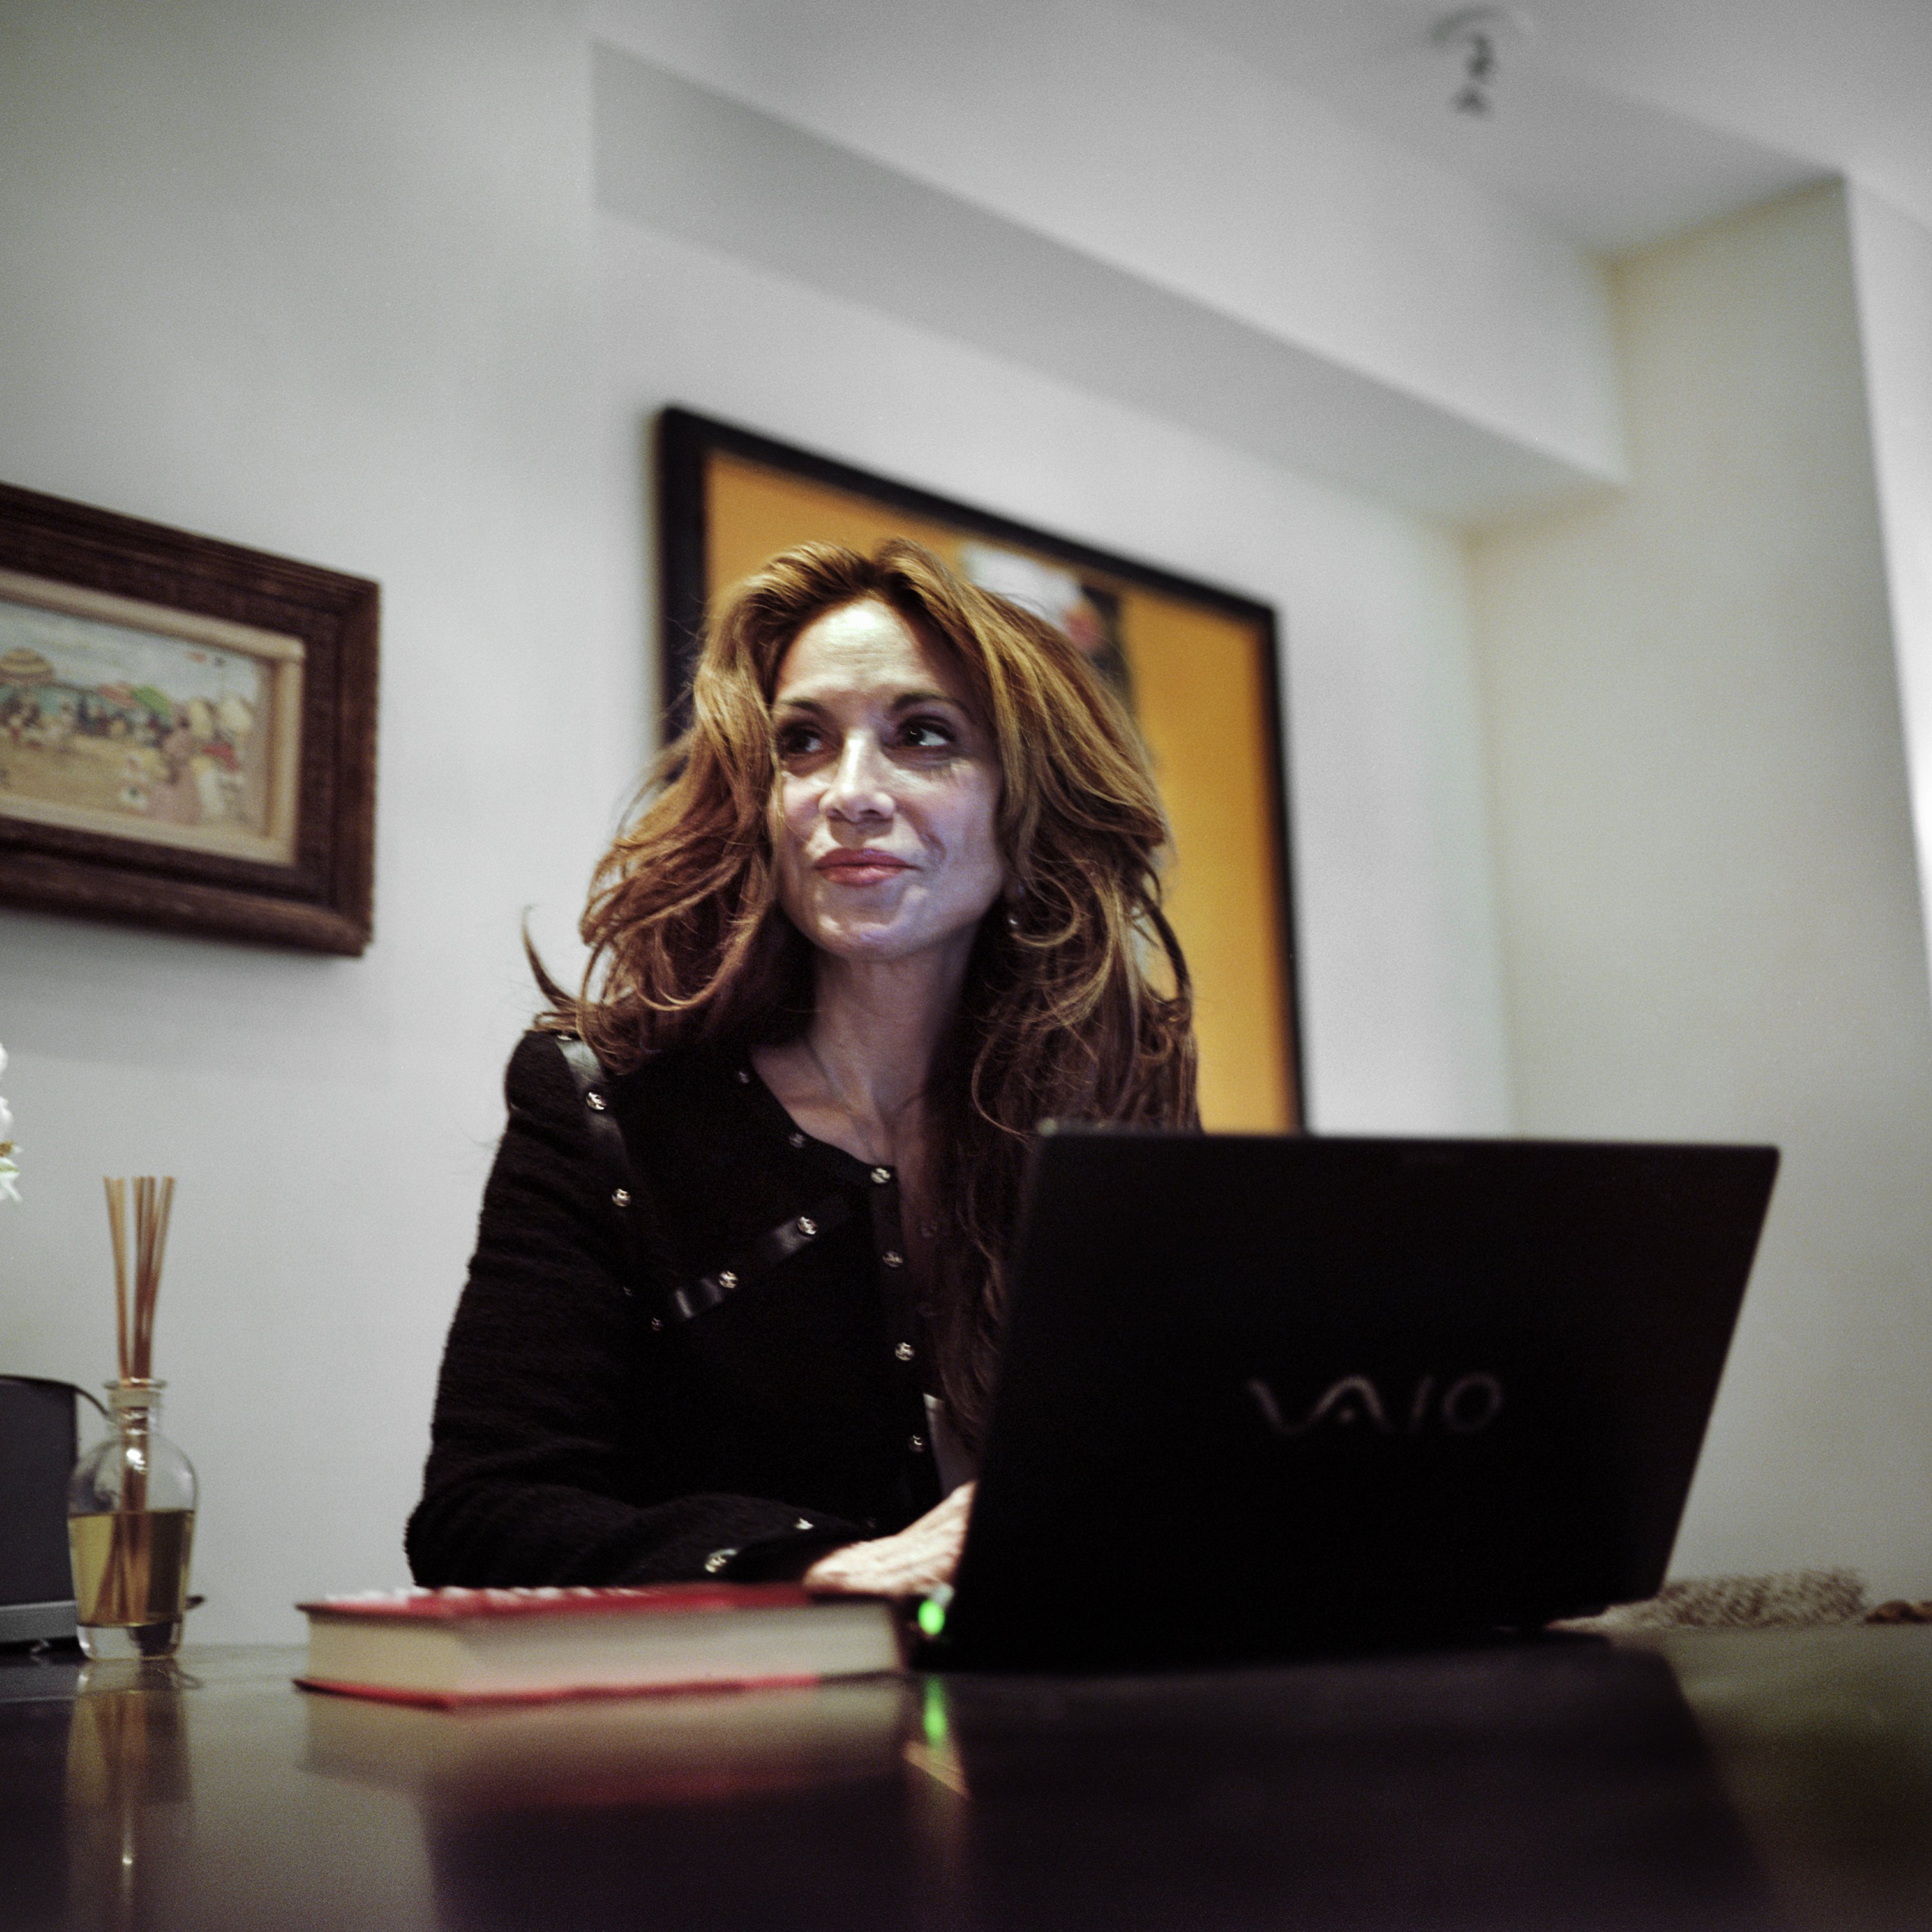 Pamela Geller, author of the book The Post-American Presidency answers emails inside her home on August 3, 2010 in New York City.